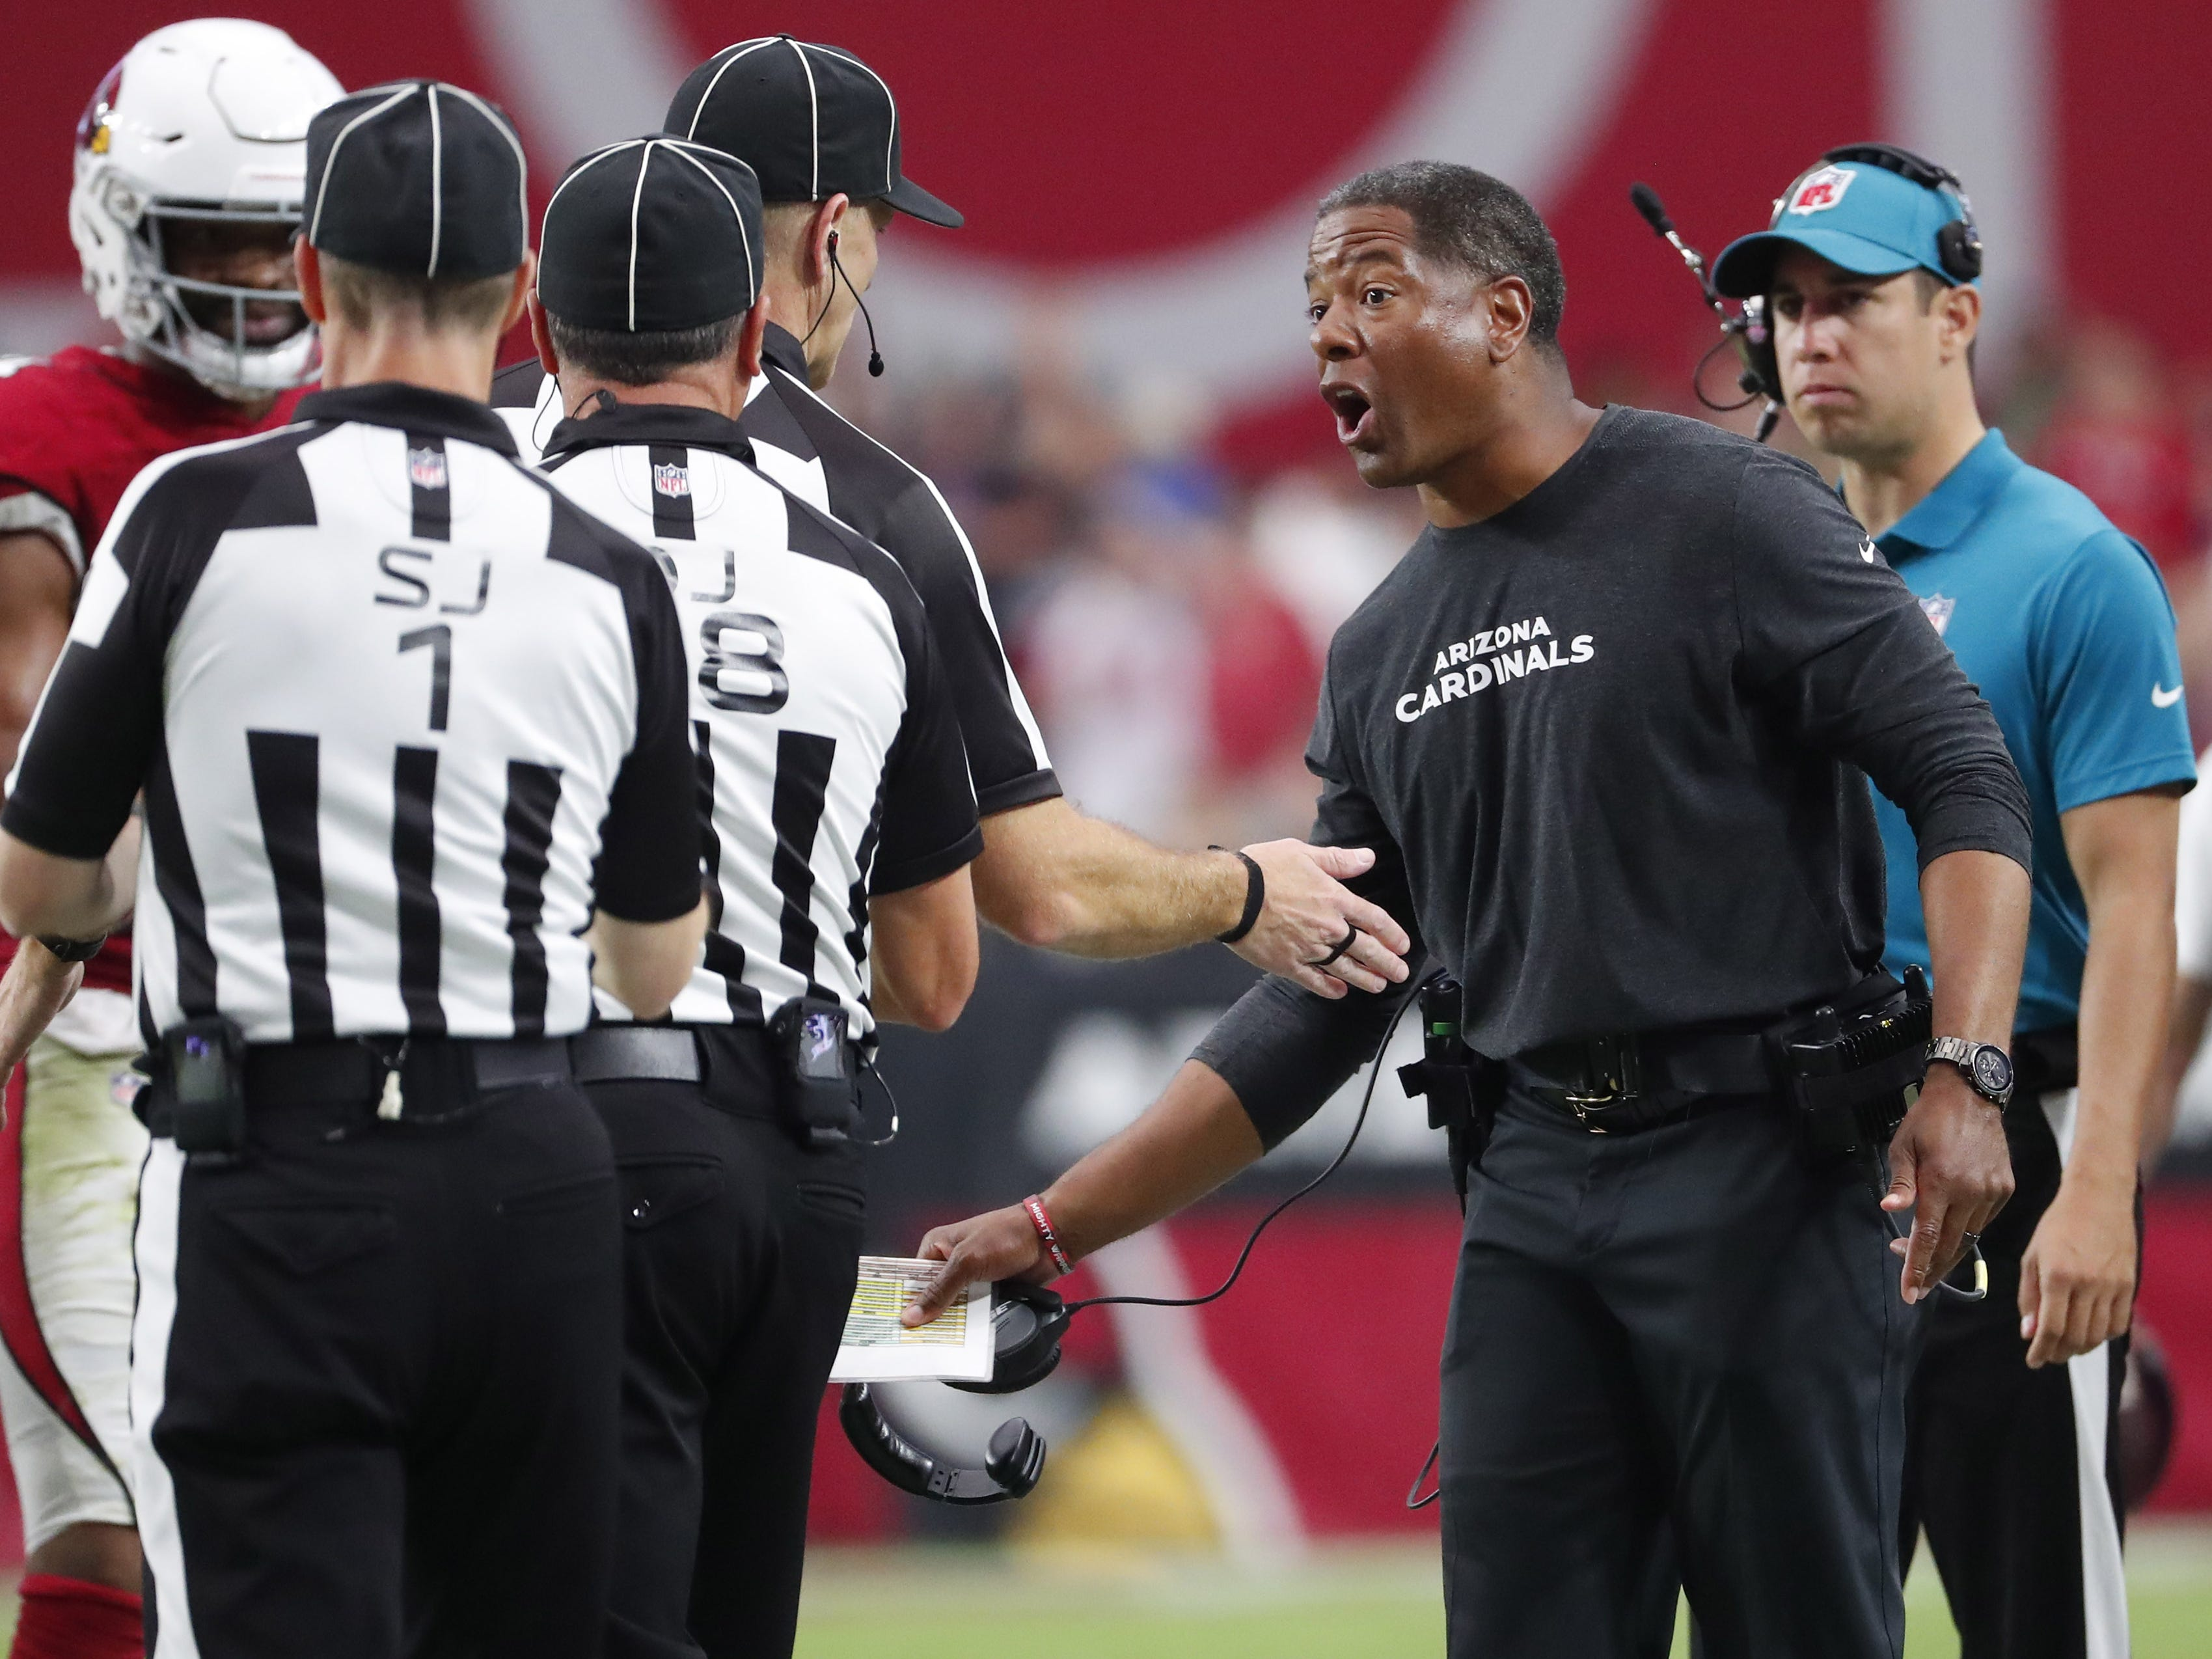 Arizona Cardinals head coach Steve Wilks argues a fumble with officials in the fourth quarter during NFL action against the San Francisco 49ers on Oct. 28 at State Farm Stadium.